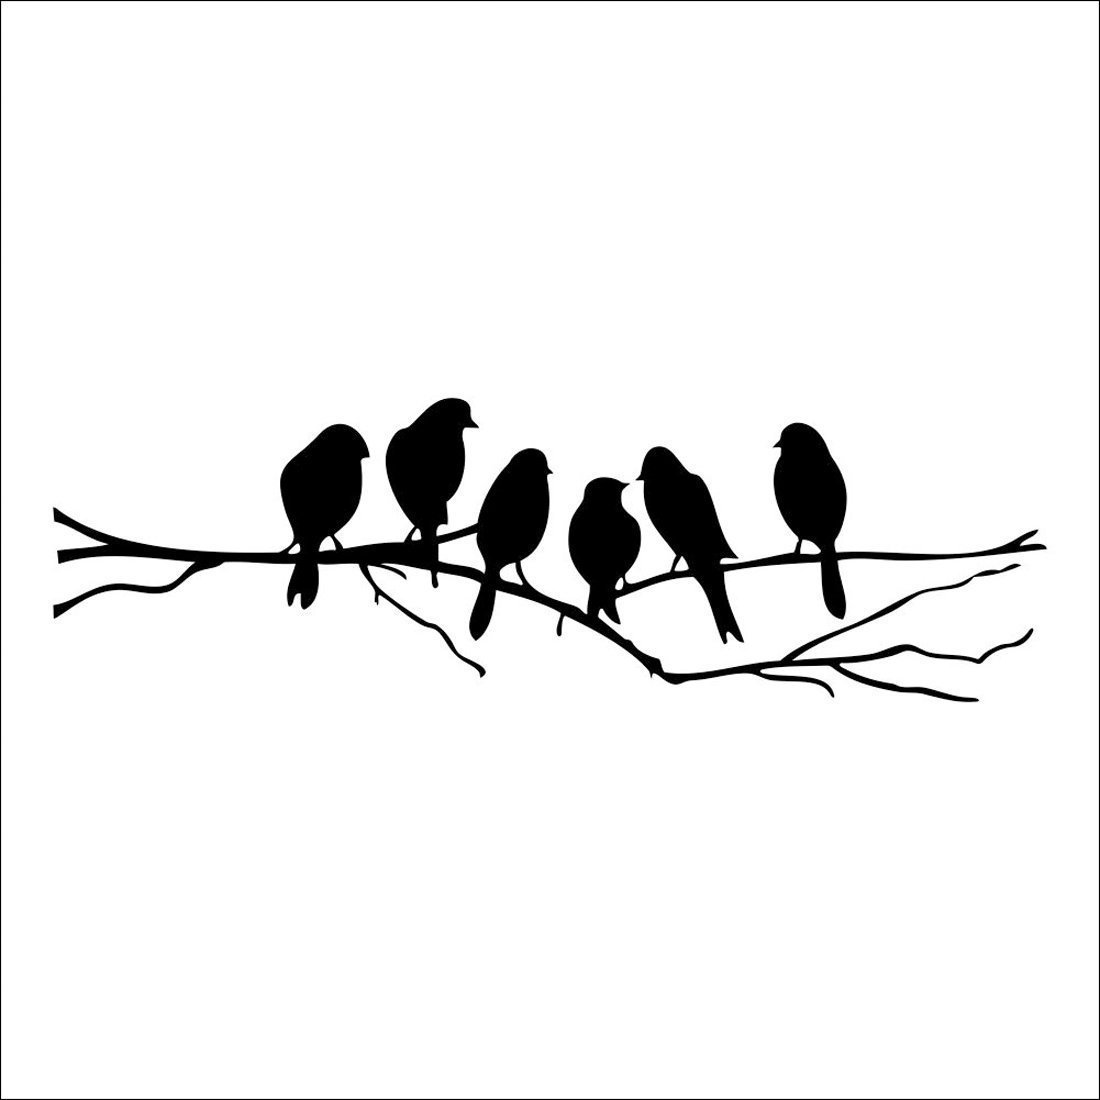 Bird Tree Branch Art Home Mural Decor